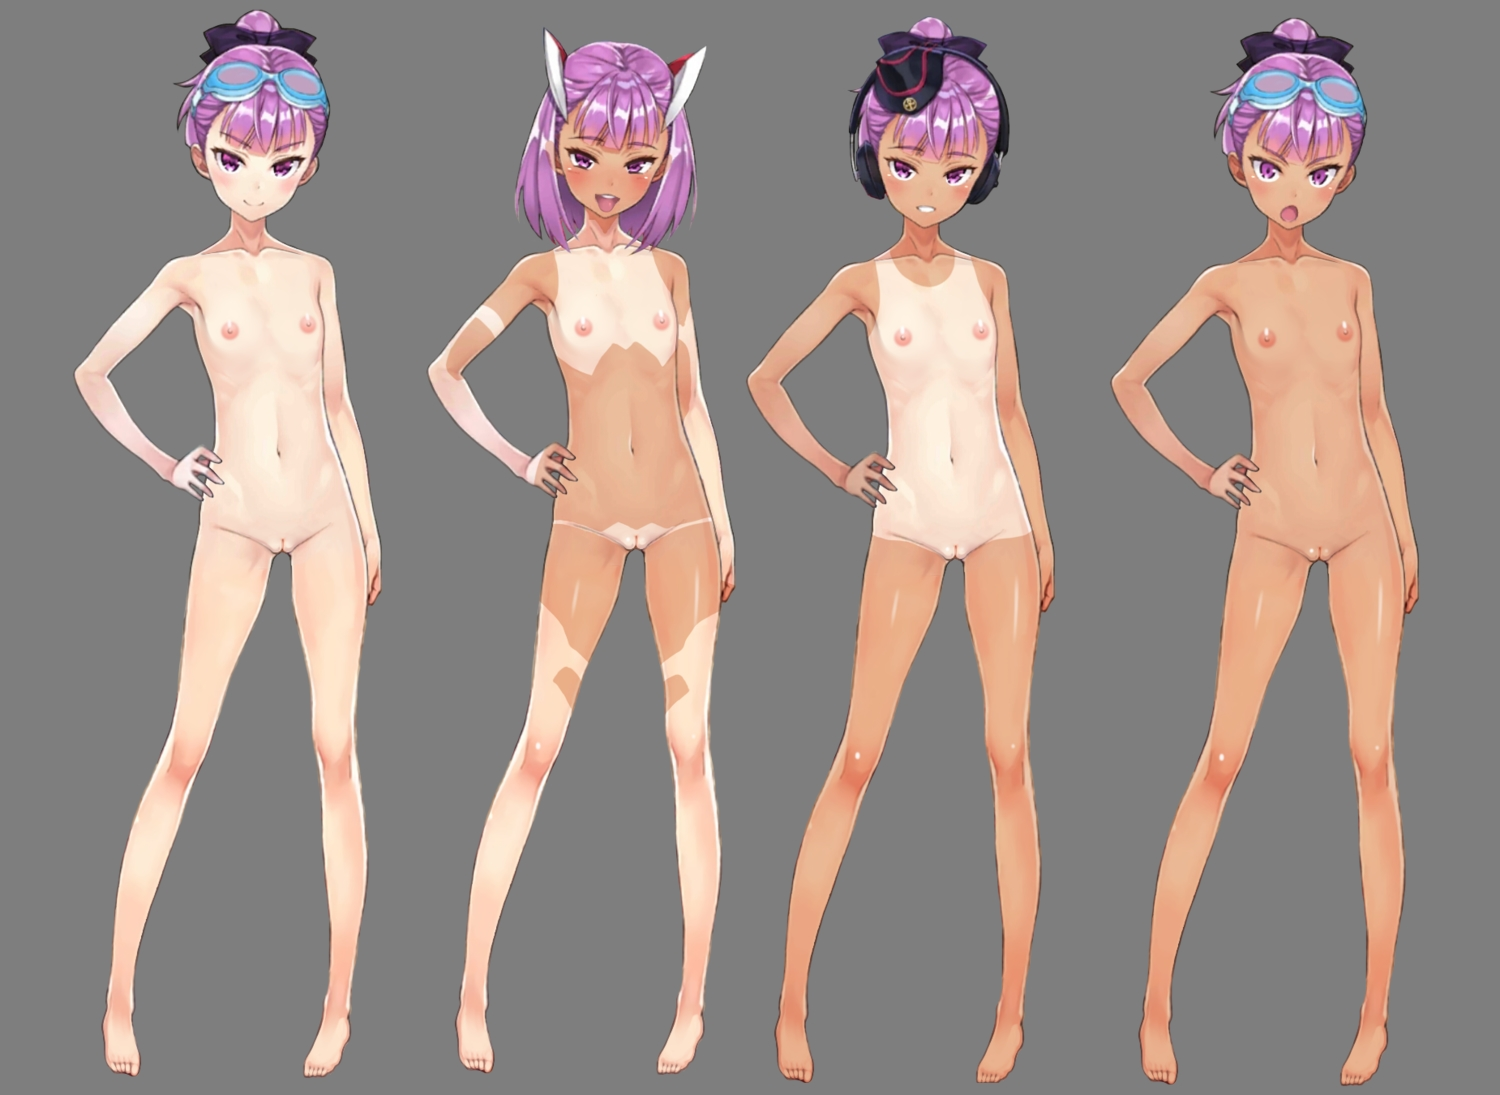 barefoot blush breasts dark_skin fate/grand_order fate_(series) flat_chest goggles hat headphones helena_blavatsky_(fate) navel nipples nude purple_eyes purple_hair pussy short_hair sunglasses tagme_(artist) tan_lines transparent uncensored